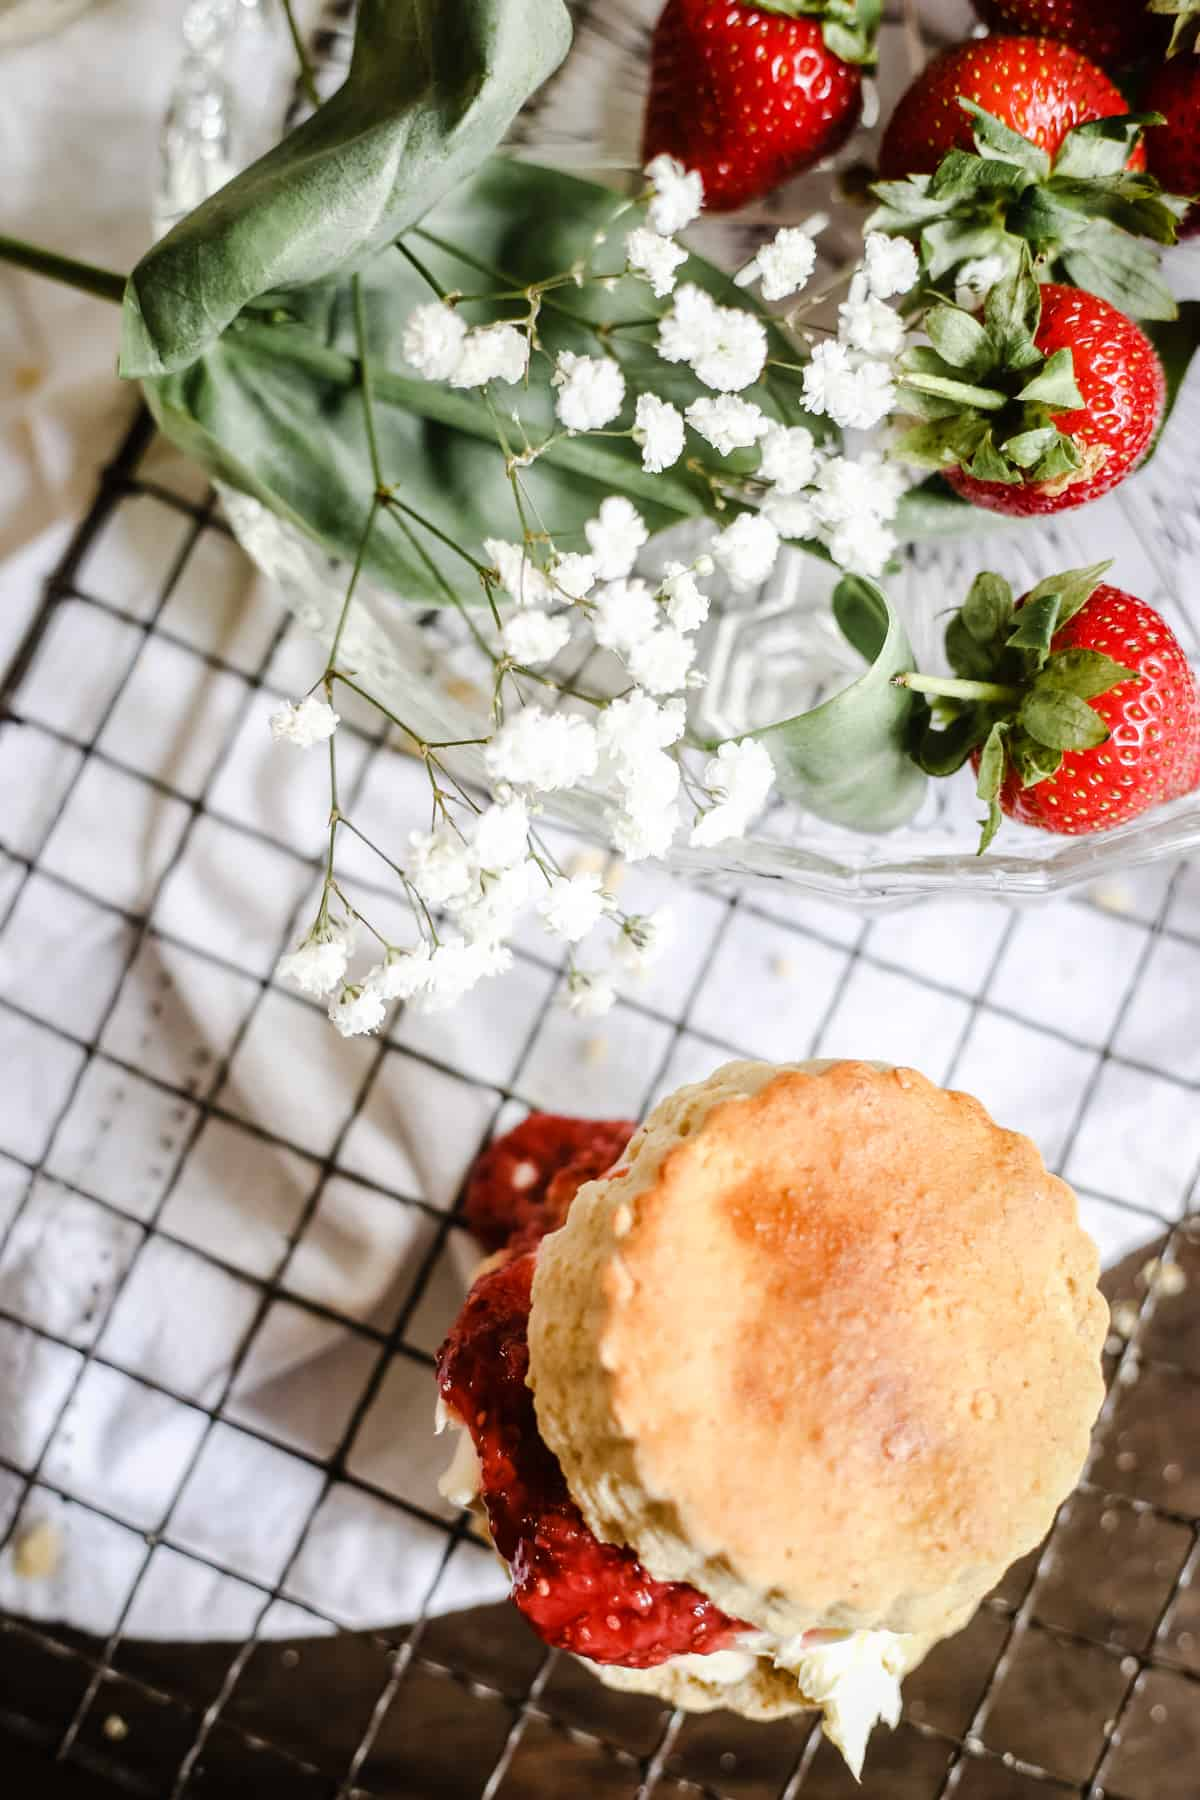 Overhead shot of a gluten-free scone with clotted cream and strawberry jam on a wire rack with a plate of strawberries and flowers